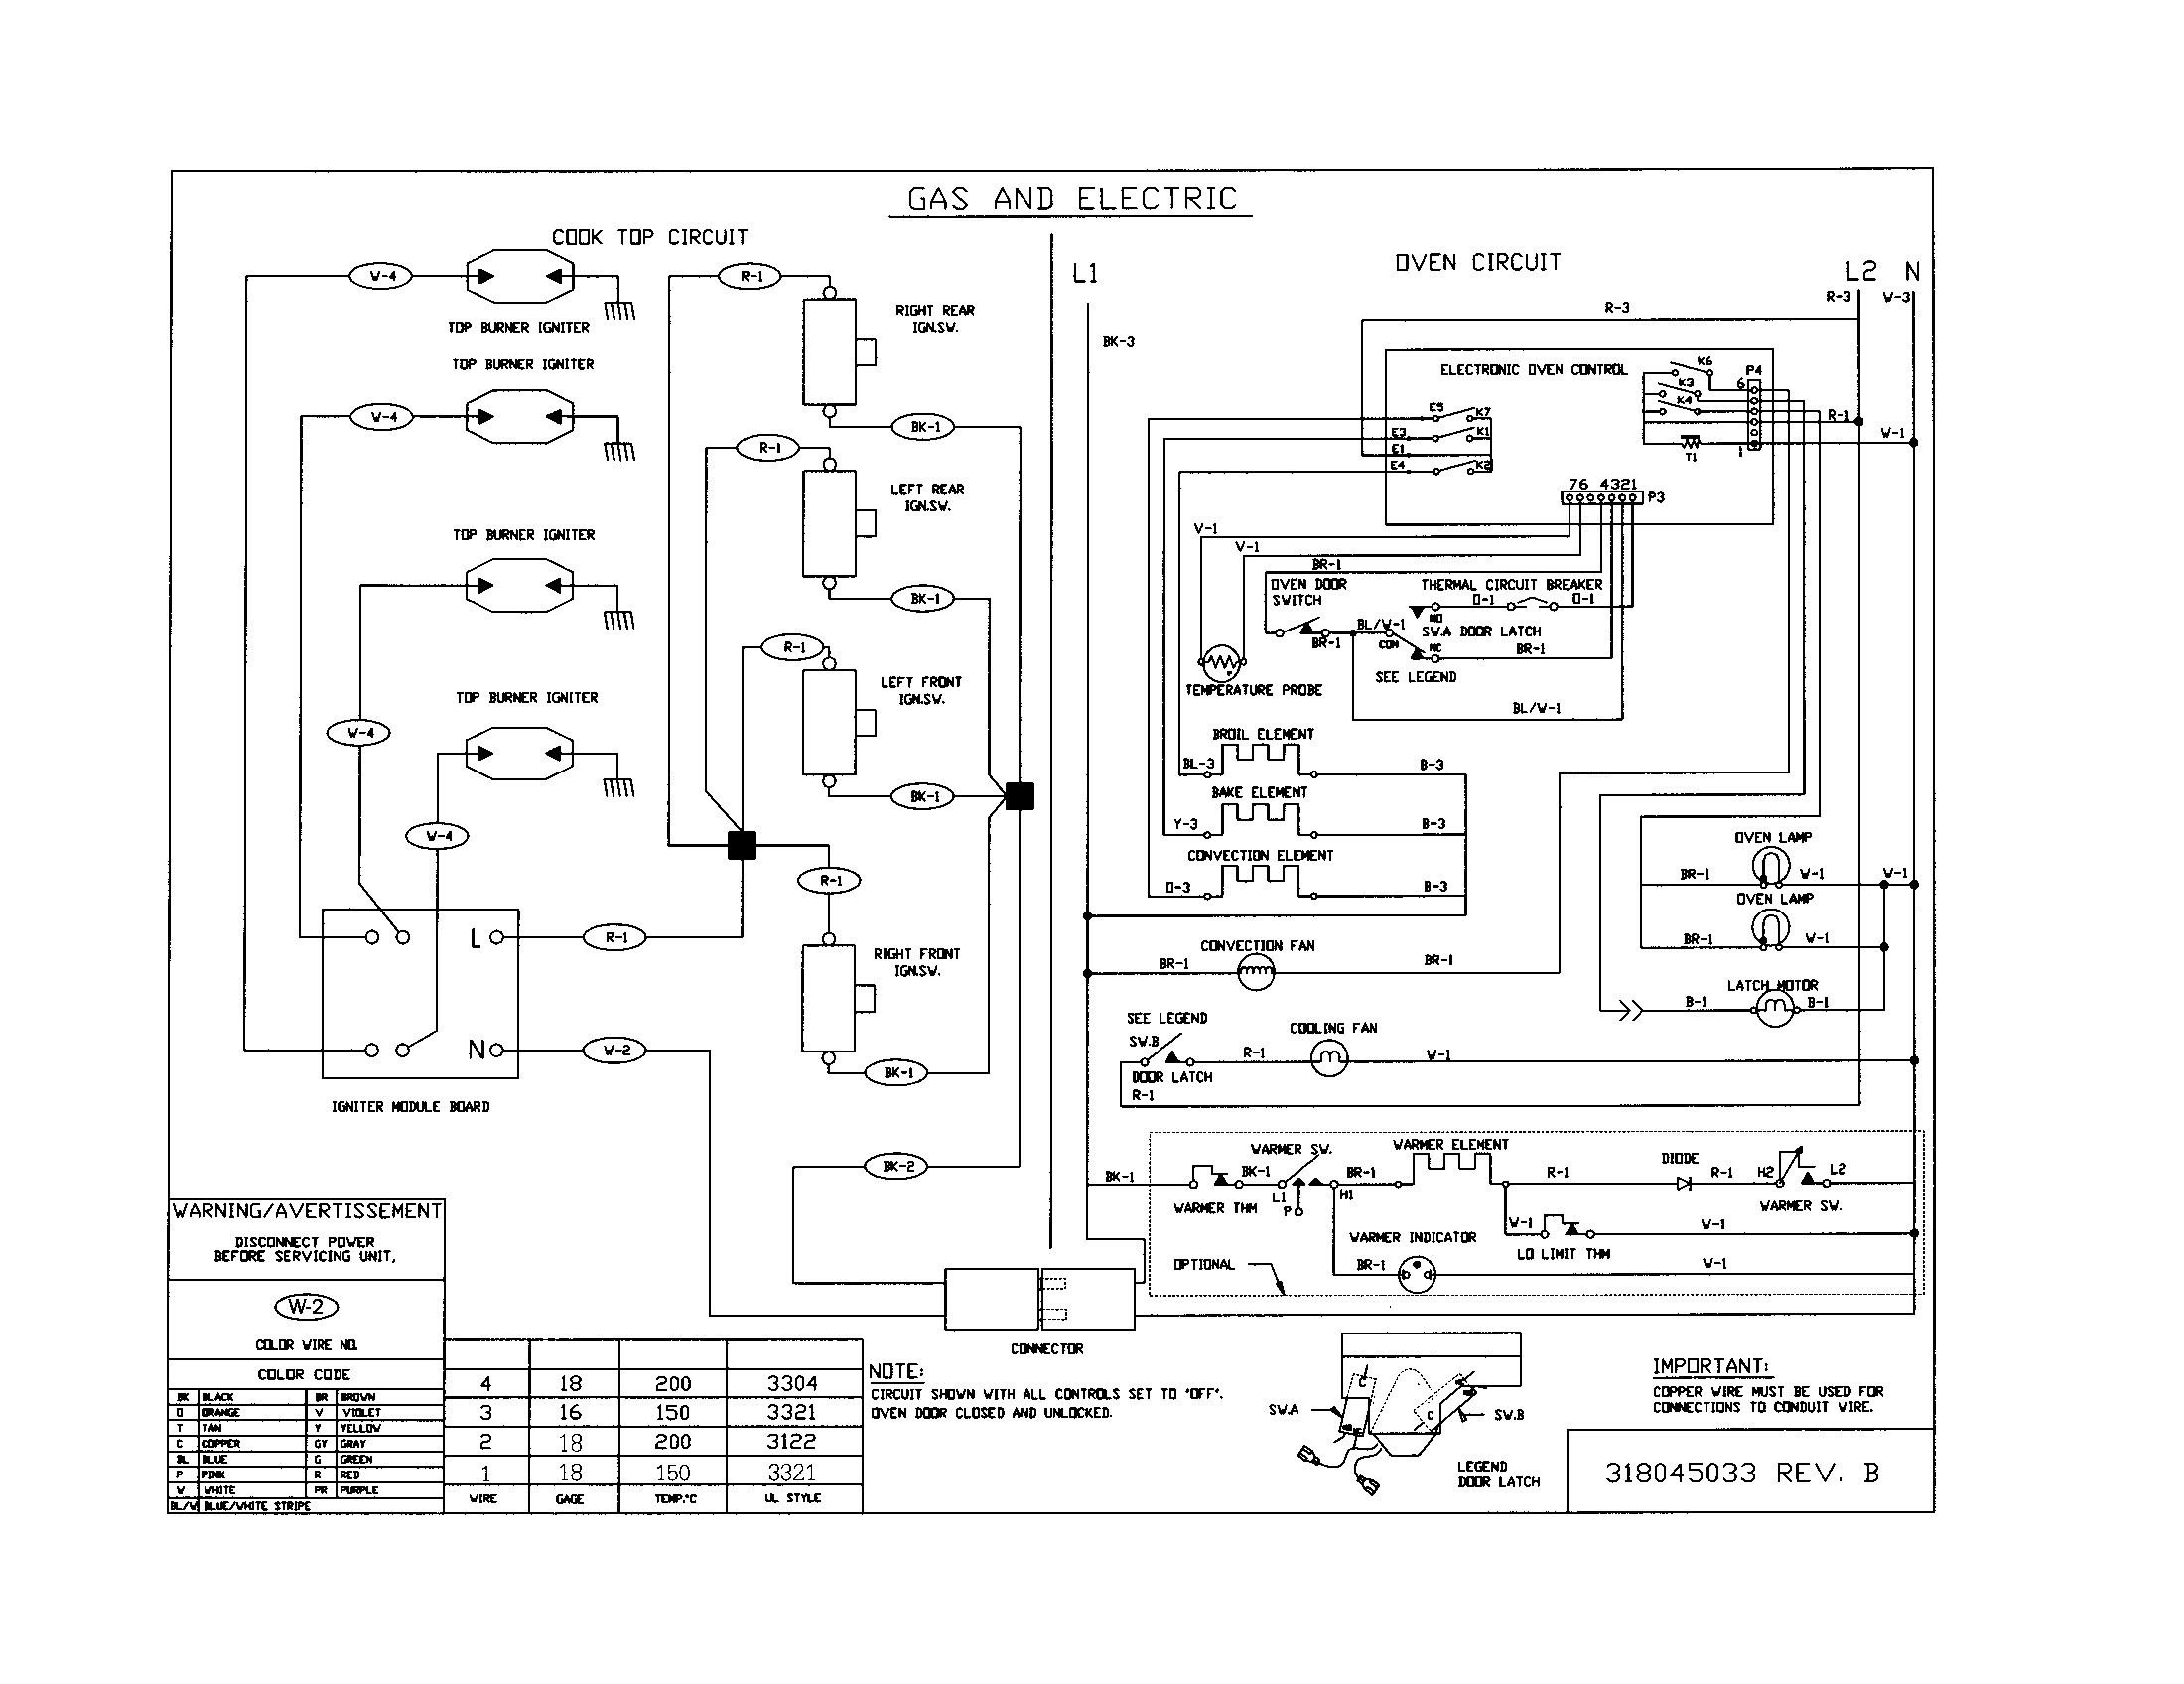 industrial oven electrical schematics